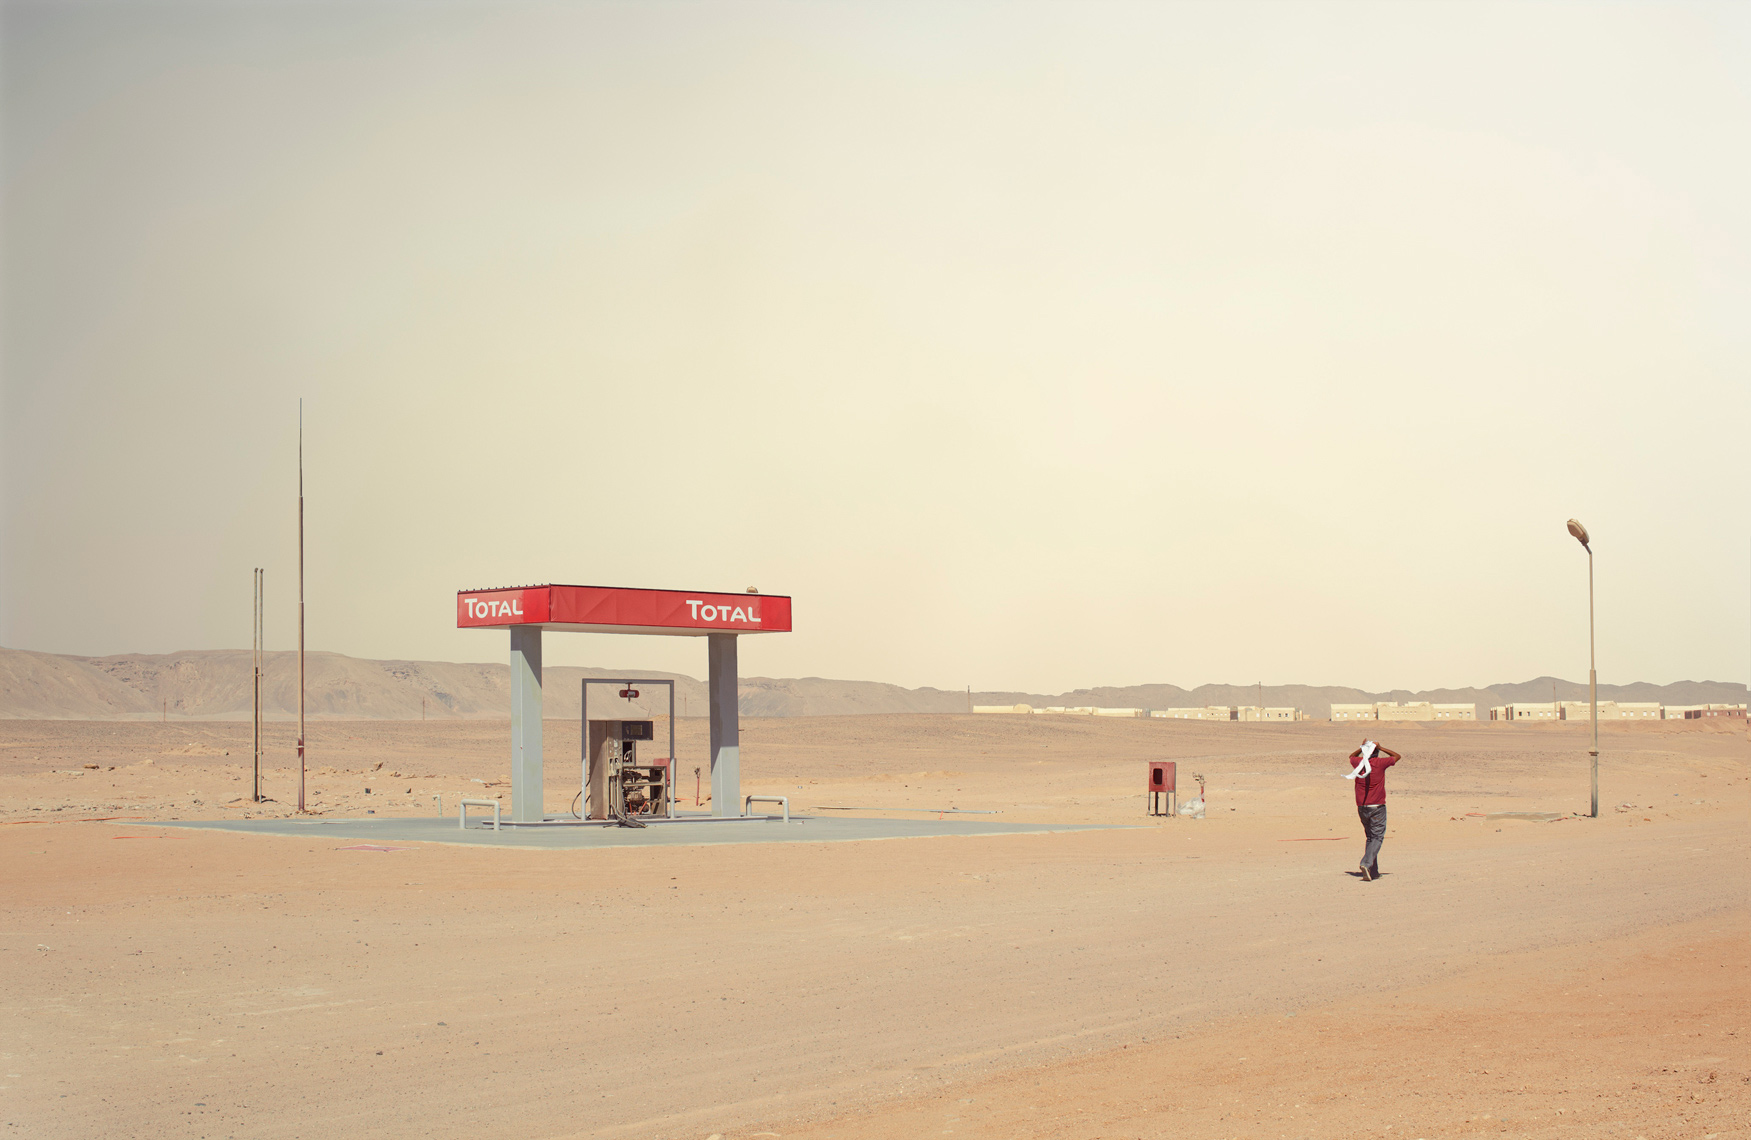 ChrisSisarich_Egypt_GasStation